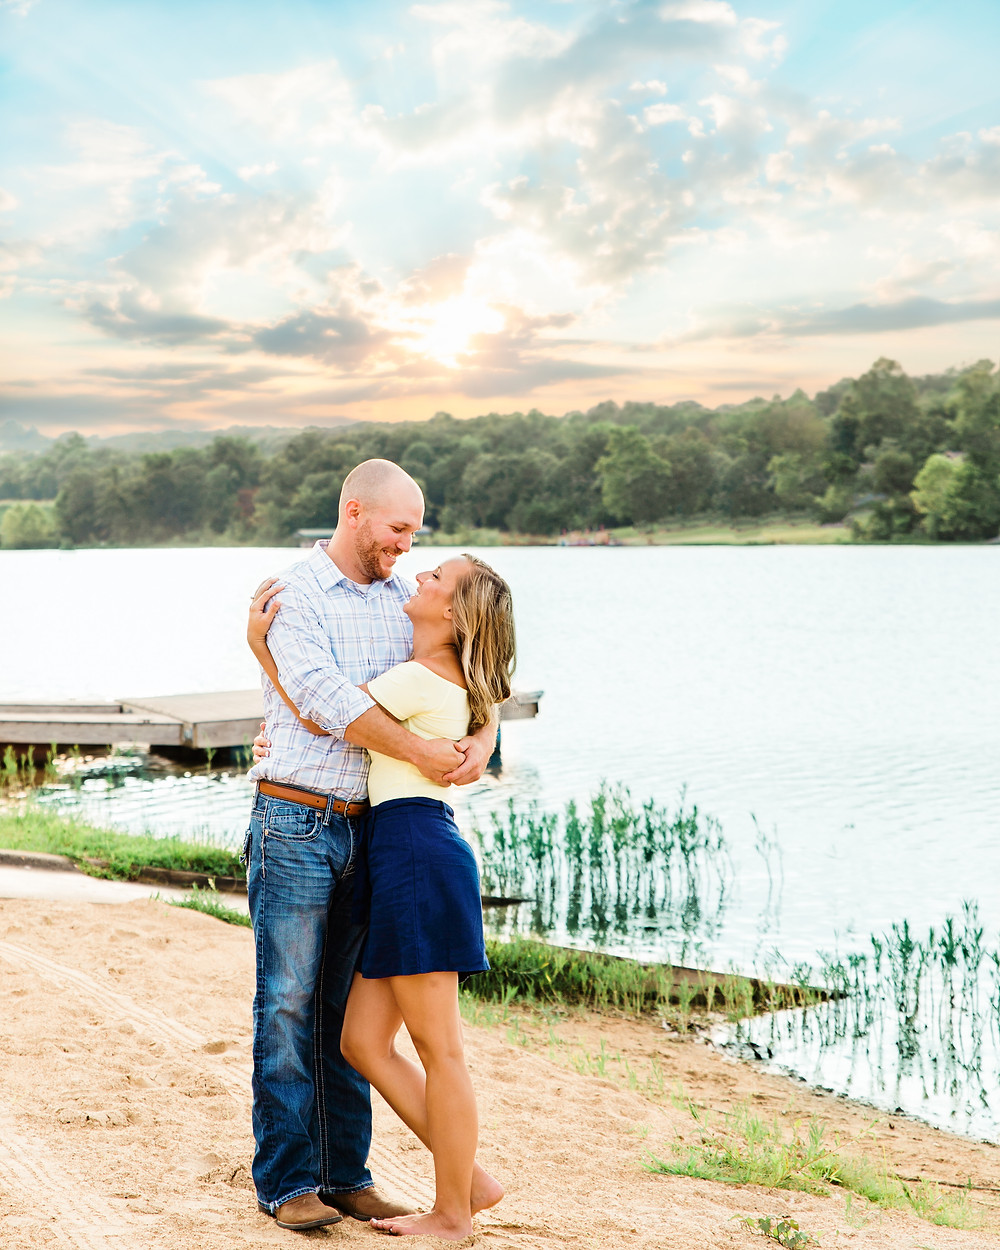 Wedding Photographer St. Louis | Beach Engagement Session